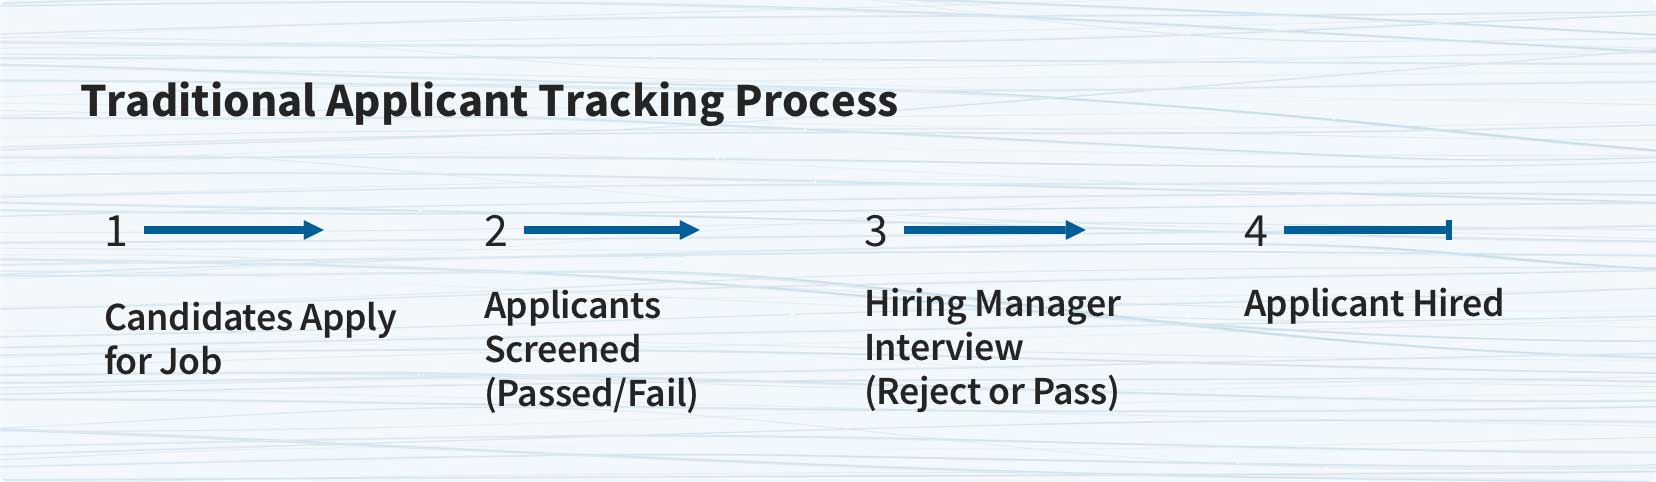 Traditional Applicant Tracking Process